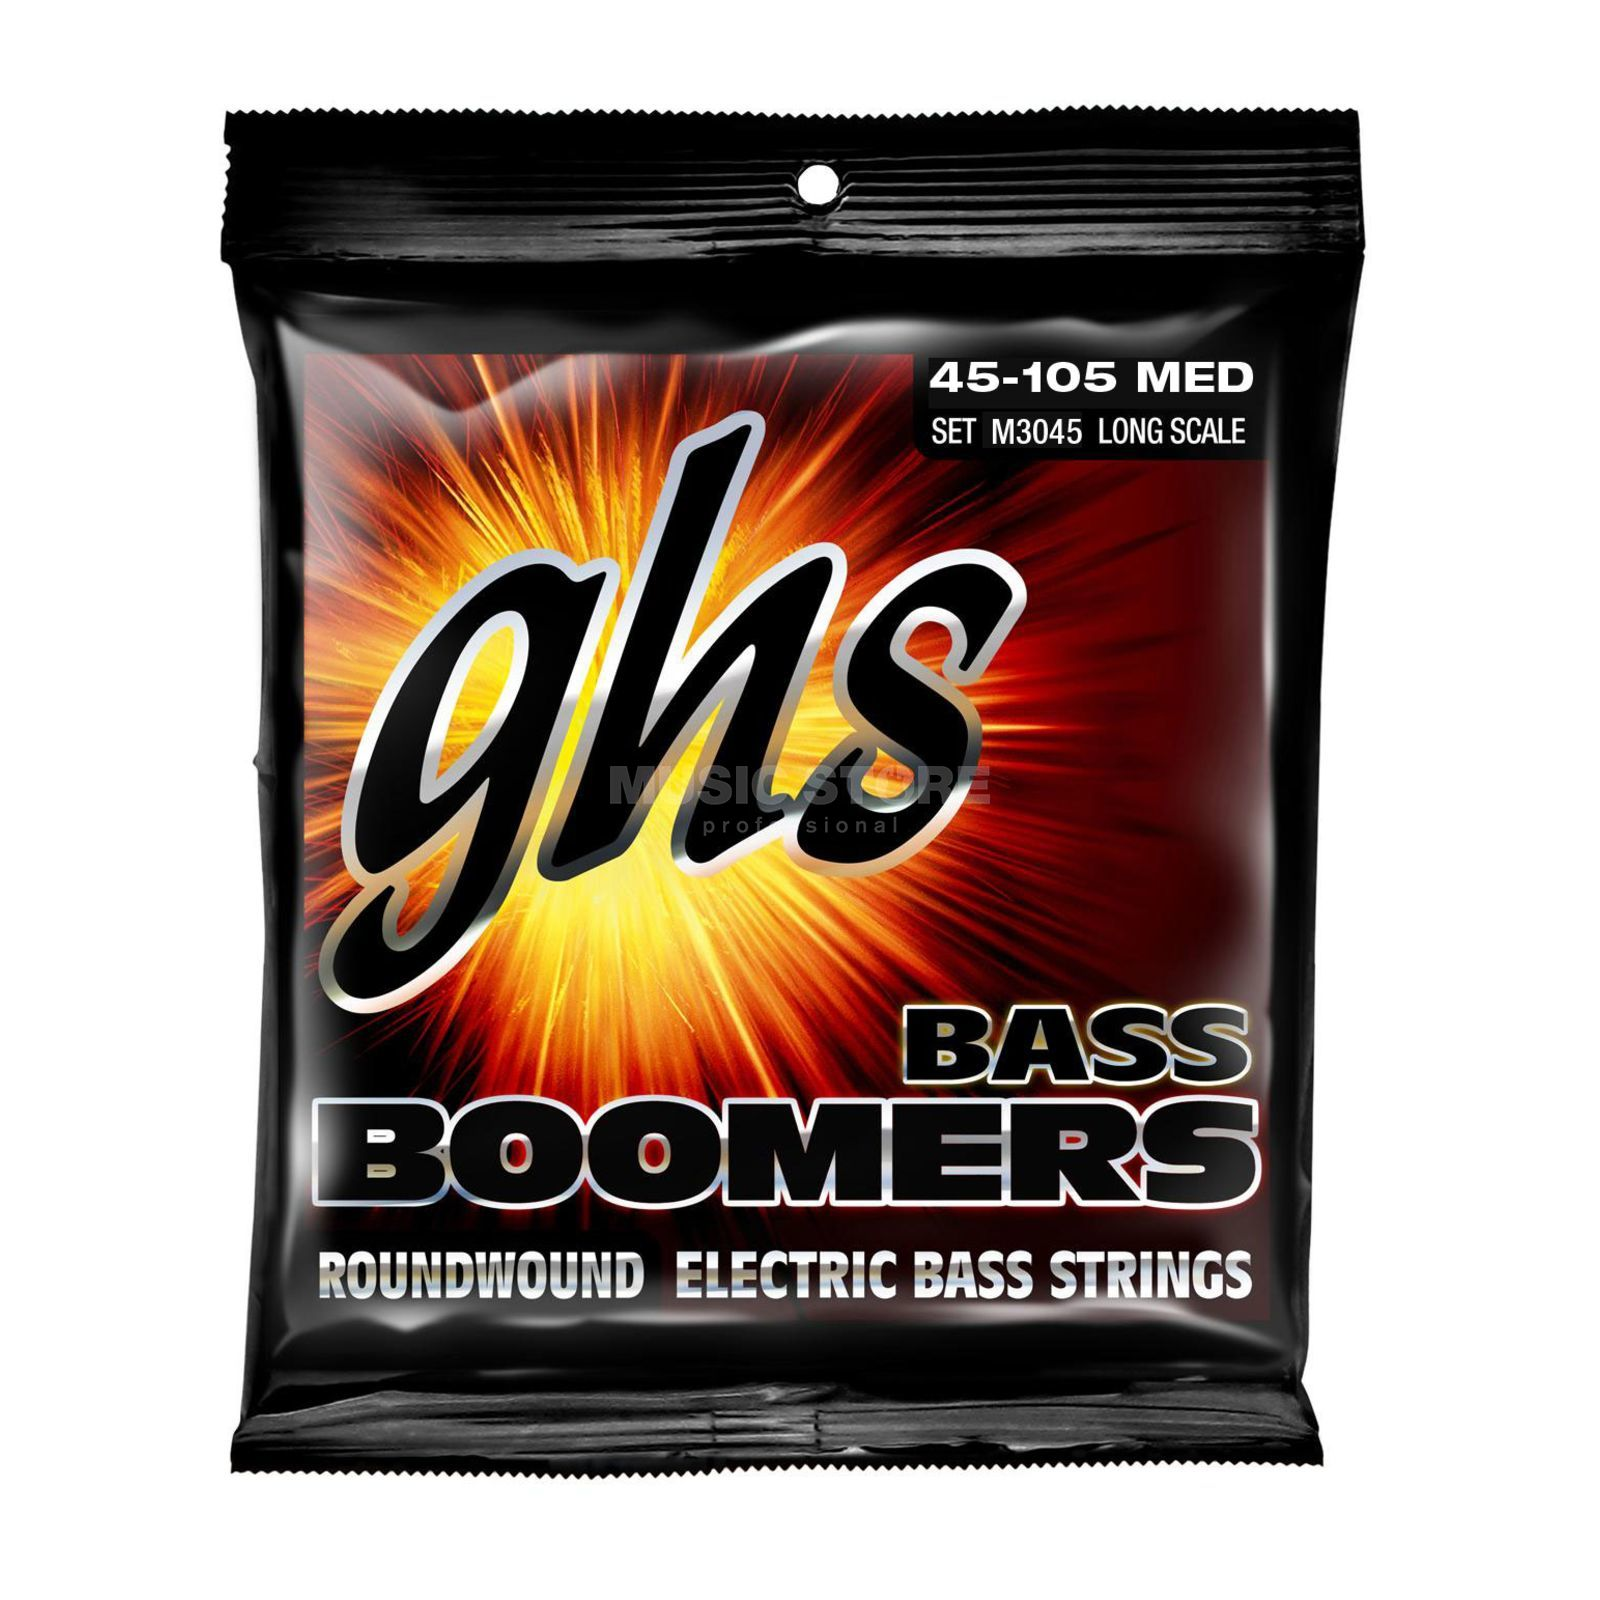 GHS Bass,4er,45-105,Boomers Roundwound Long Scale Изображение товара